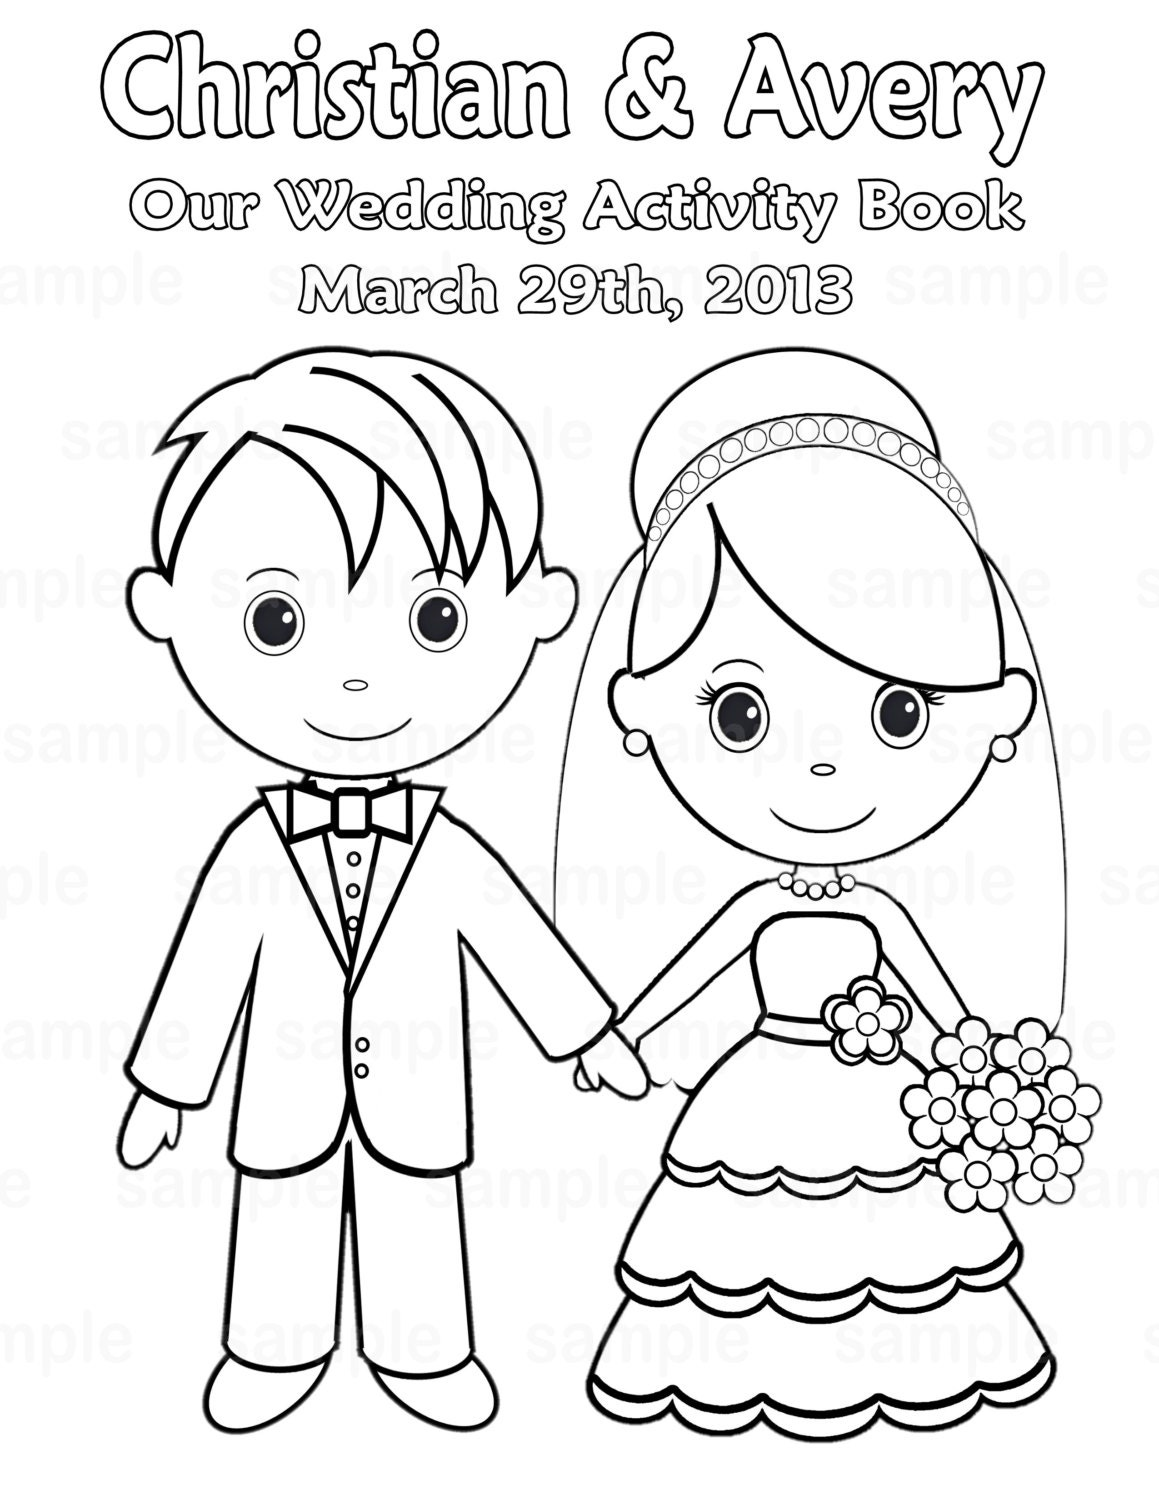 Printable personalized wedding coloring activity by for Wedding coloring pages to print